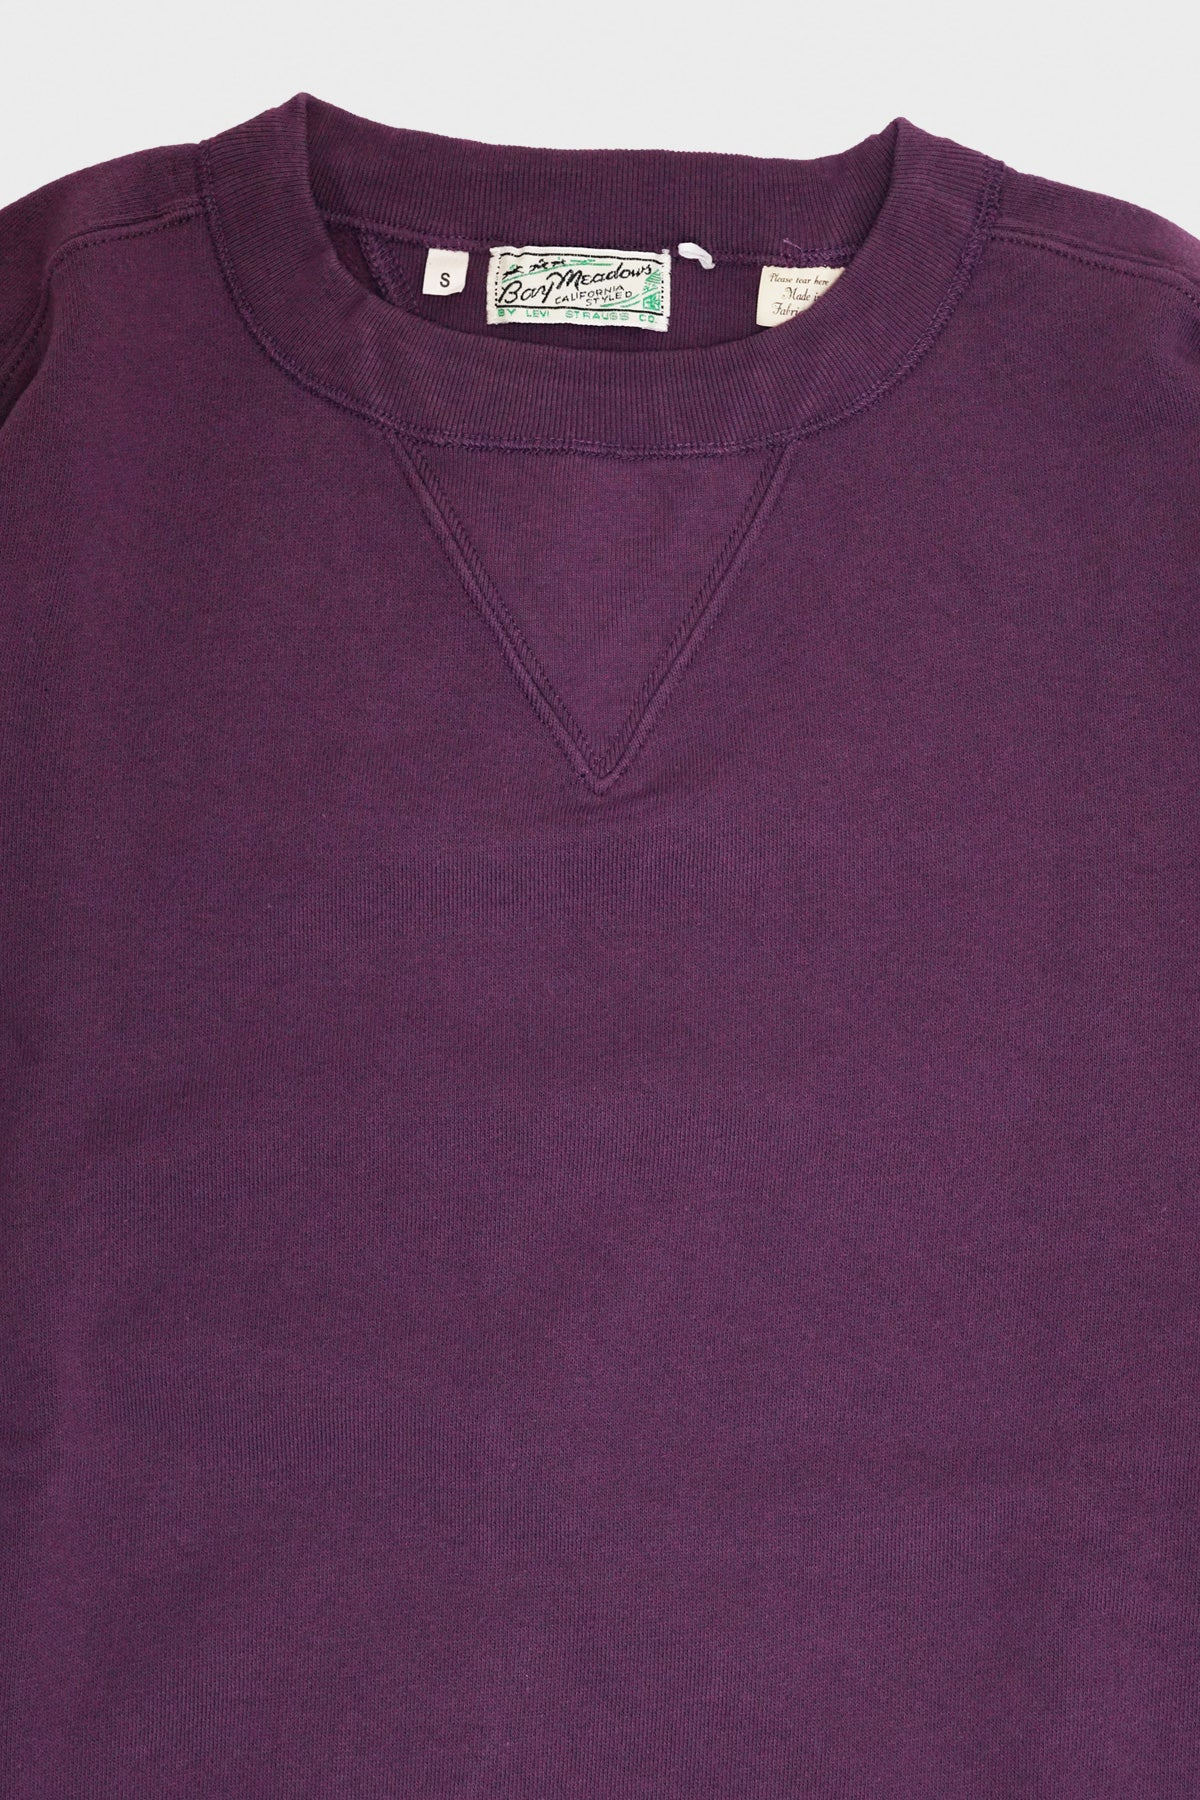 Levi's Vintage Clothing - Bay Meadows Sweatshirt - Dark Purple - Canoe Club